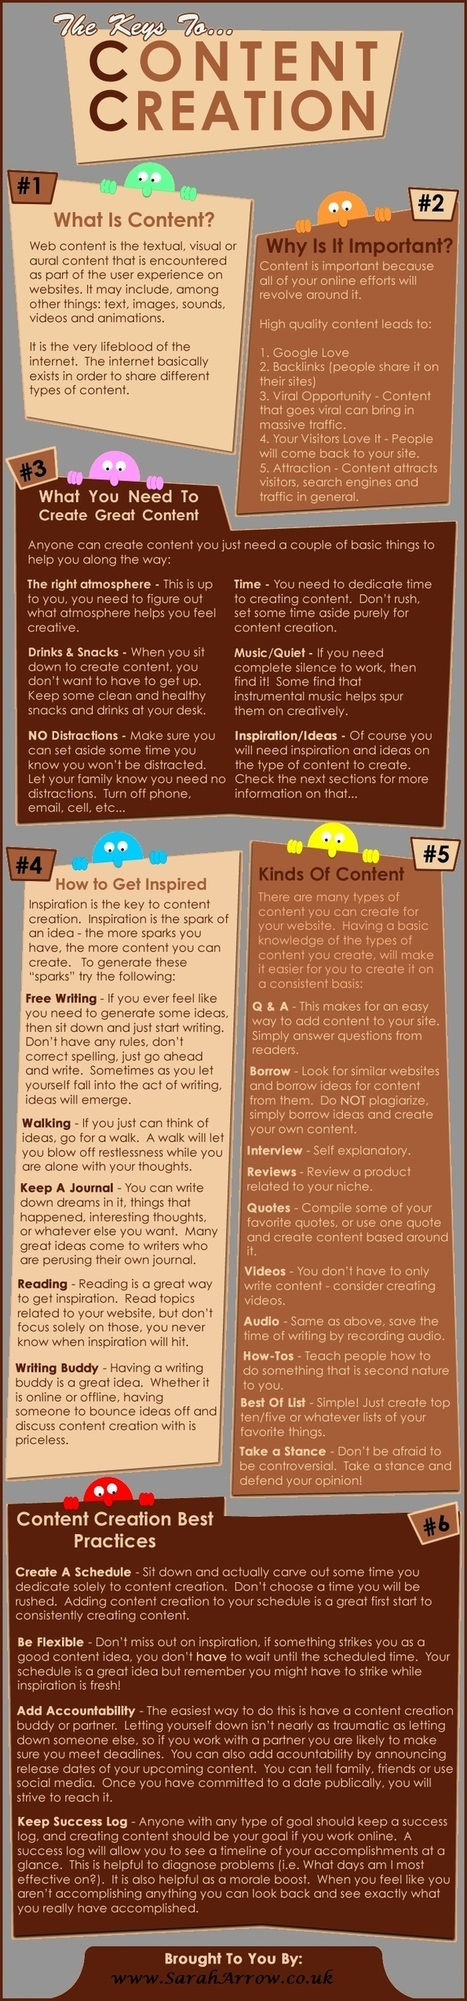 The keys to content creation #infographic | teaching with technology | Scoop.it